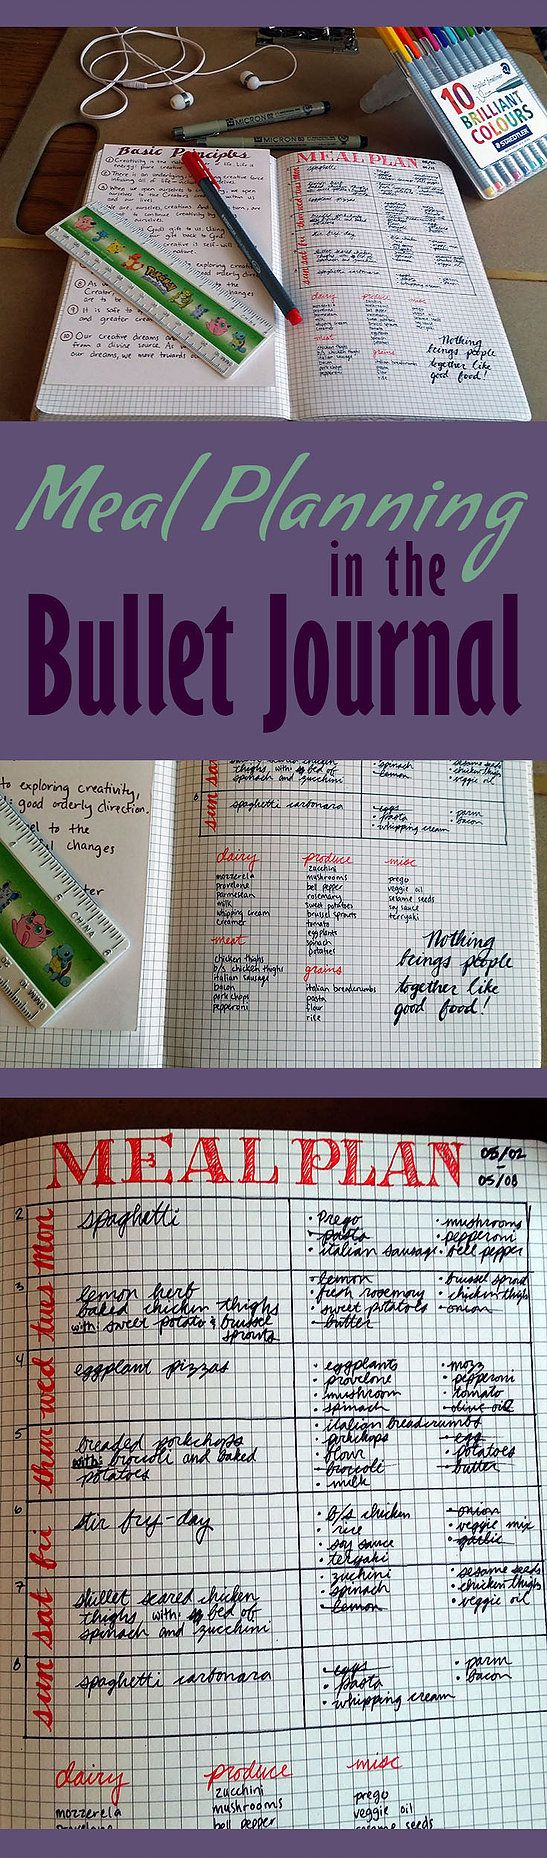 Little Coffee Fox | Meal Planning in the Bullet Journal